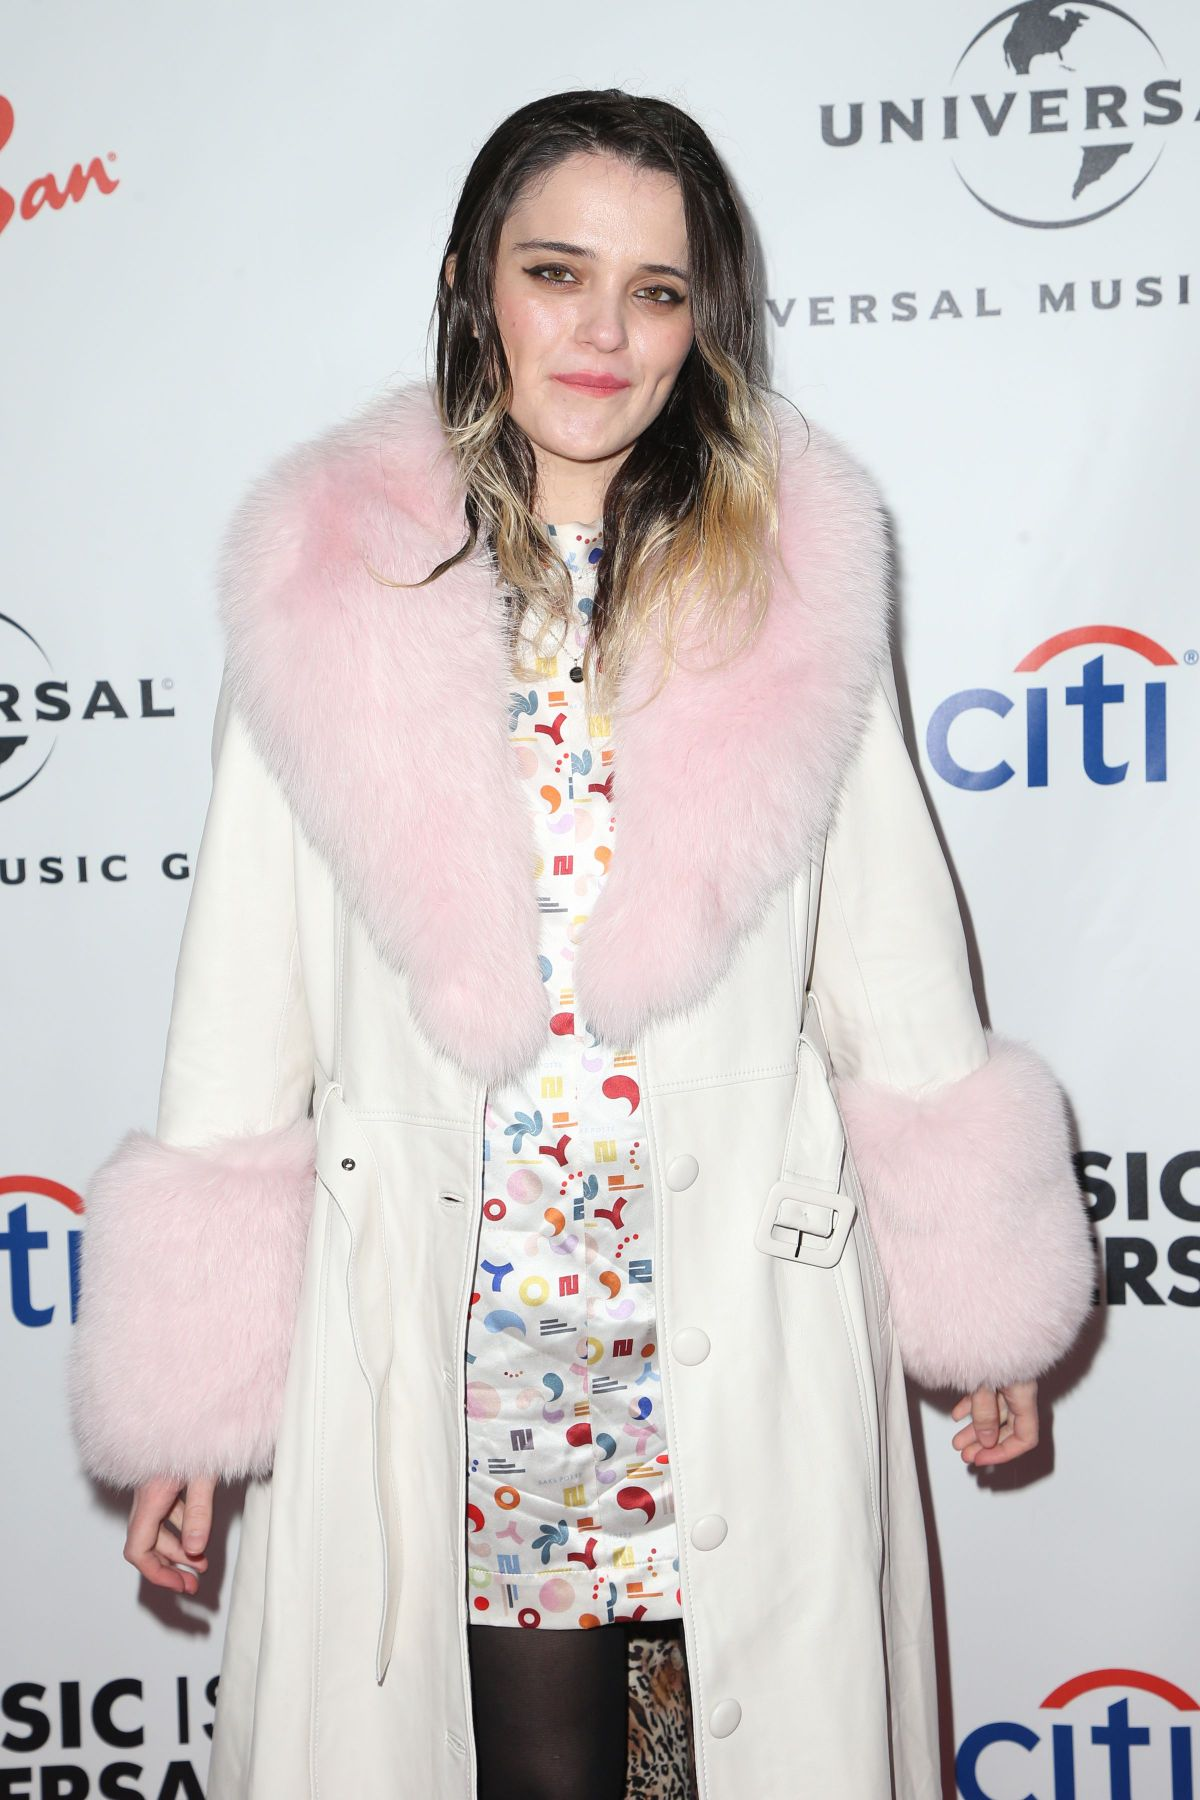 SKY FERREIRA at Universal Music Group Grammy After-party ...